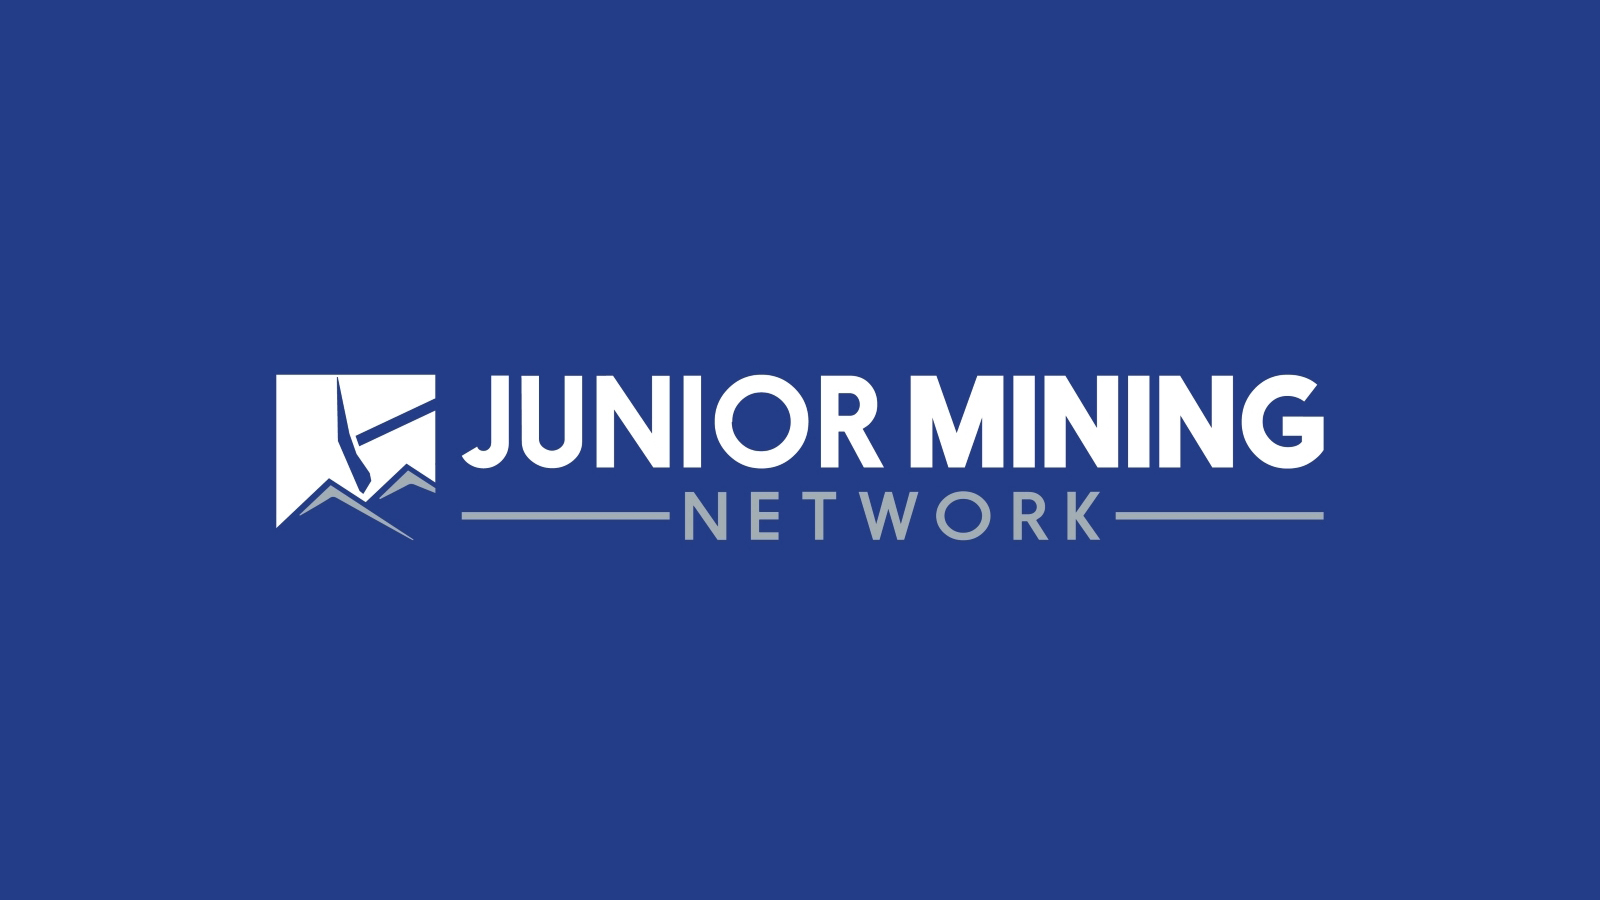 Cannot view this image? Visit: https://www.juniorminingnetwork.com/images/news/newsfile/32201_dni6.jpg